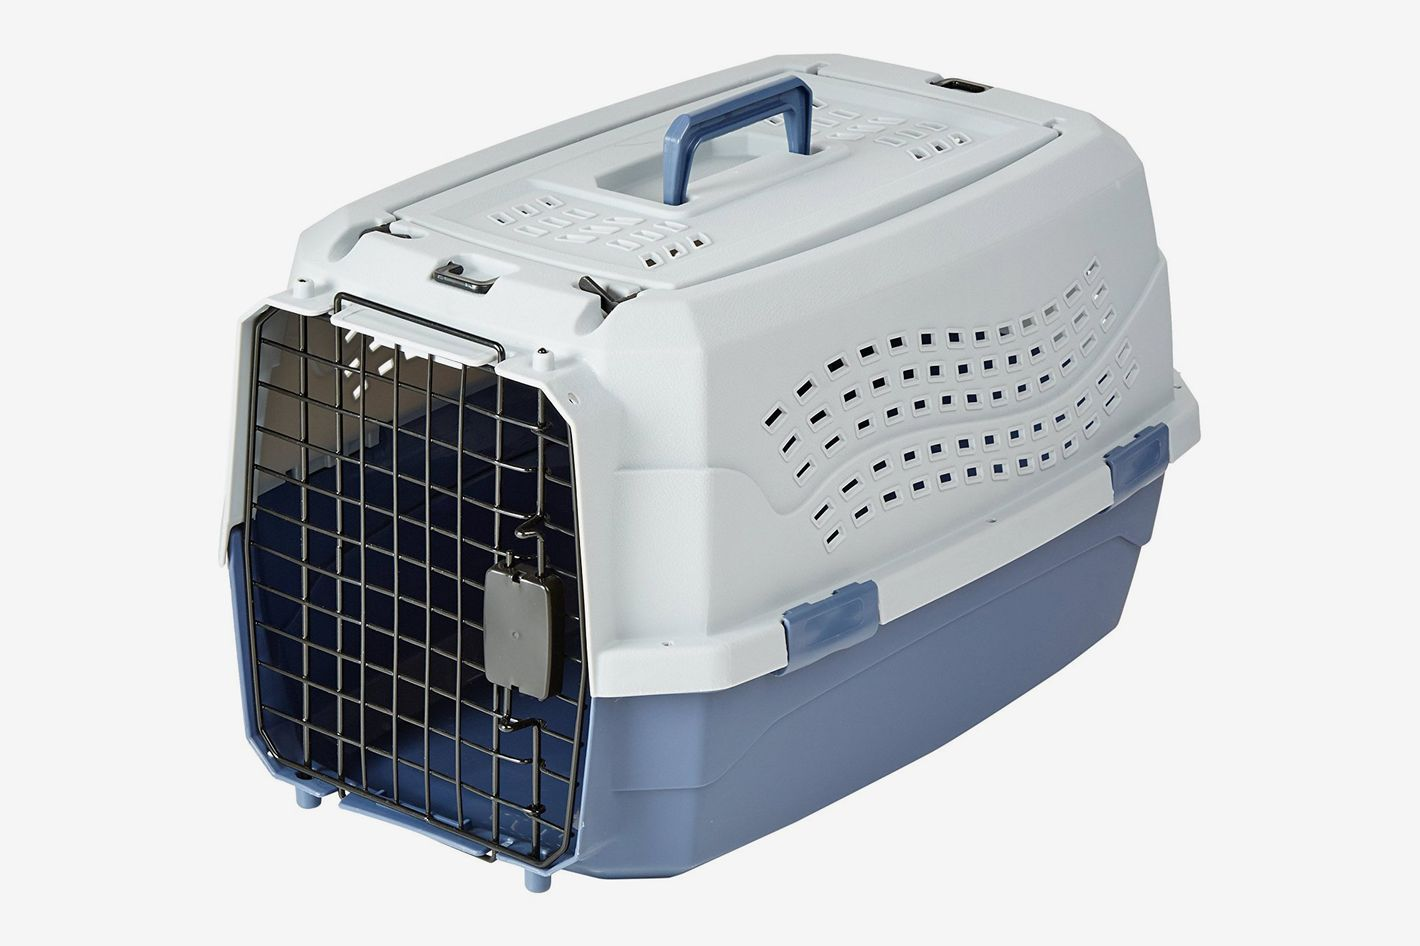 AmazonBasics Two-Door Top-Load Pet Kennel 23-Inch